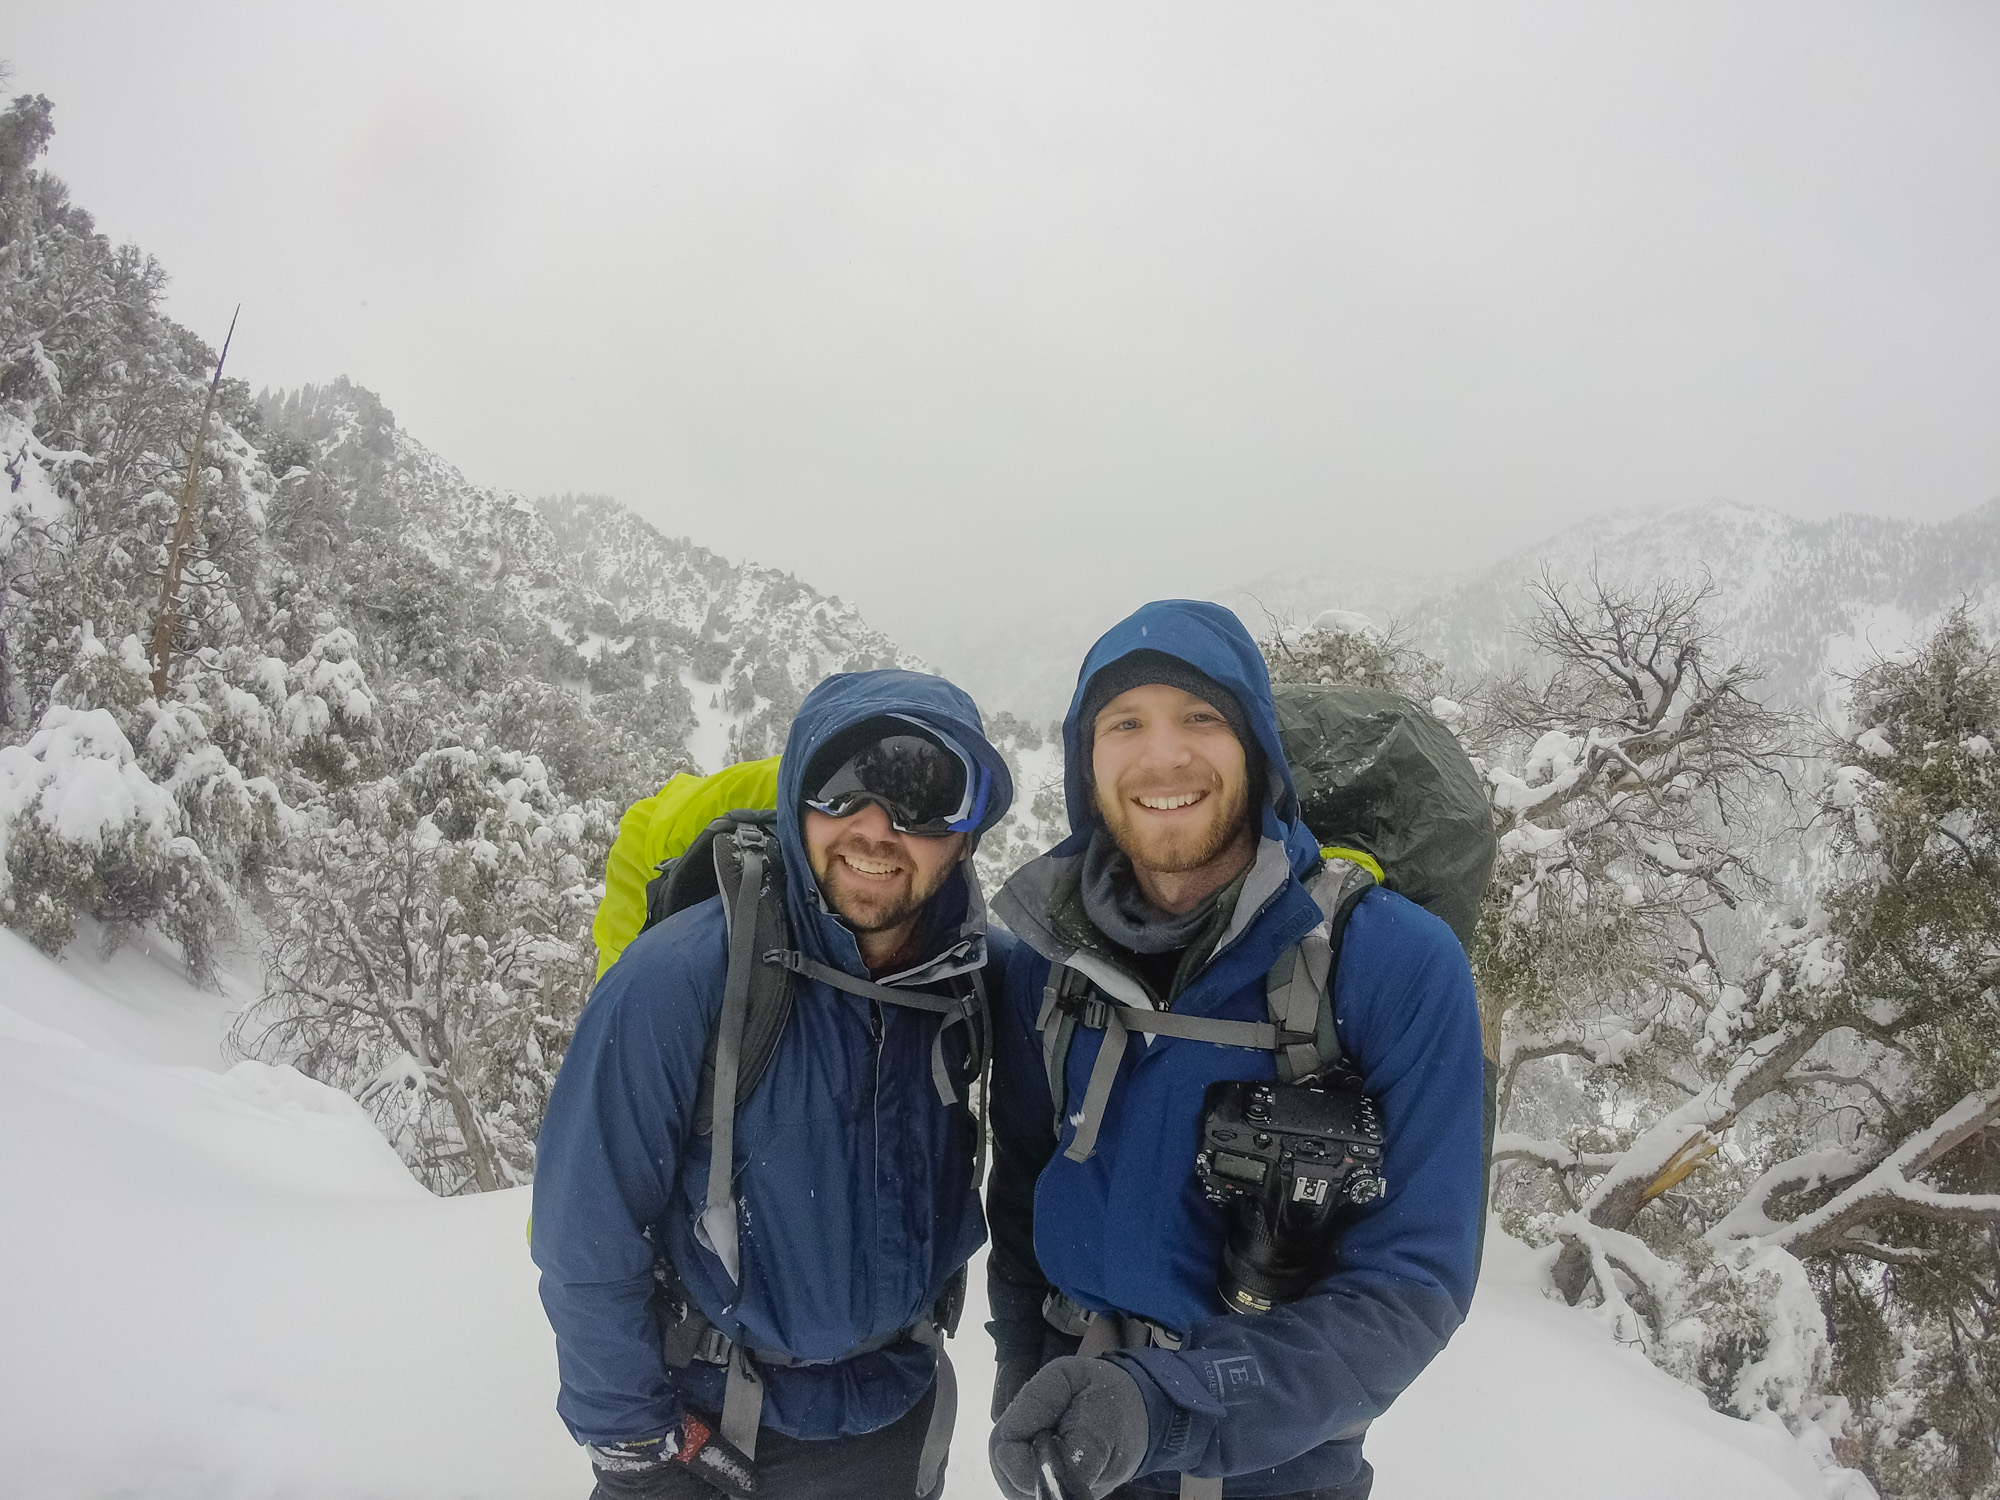 Tyler (left) and David (right) hiking down San Gorgonio in a snowstorm.